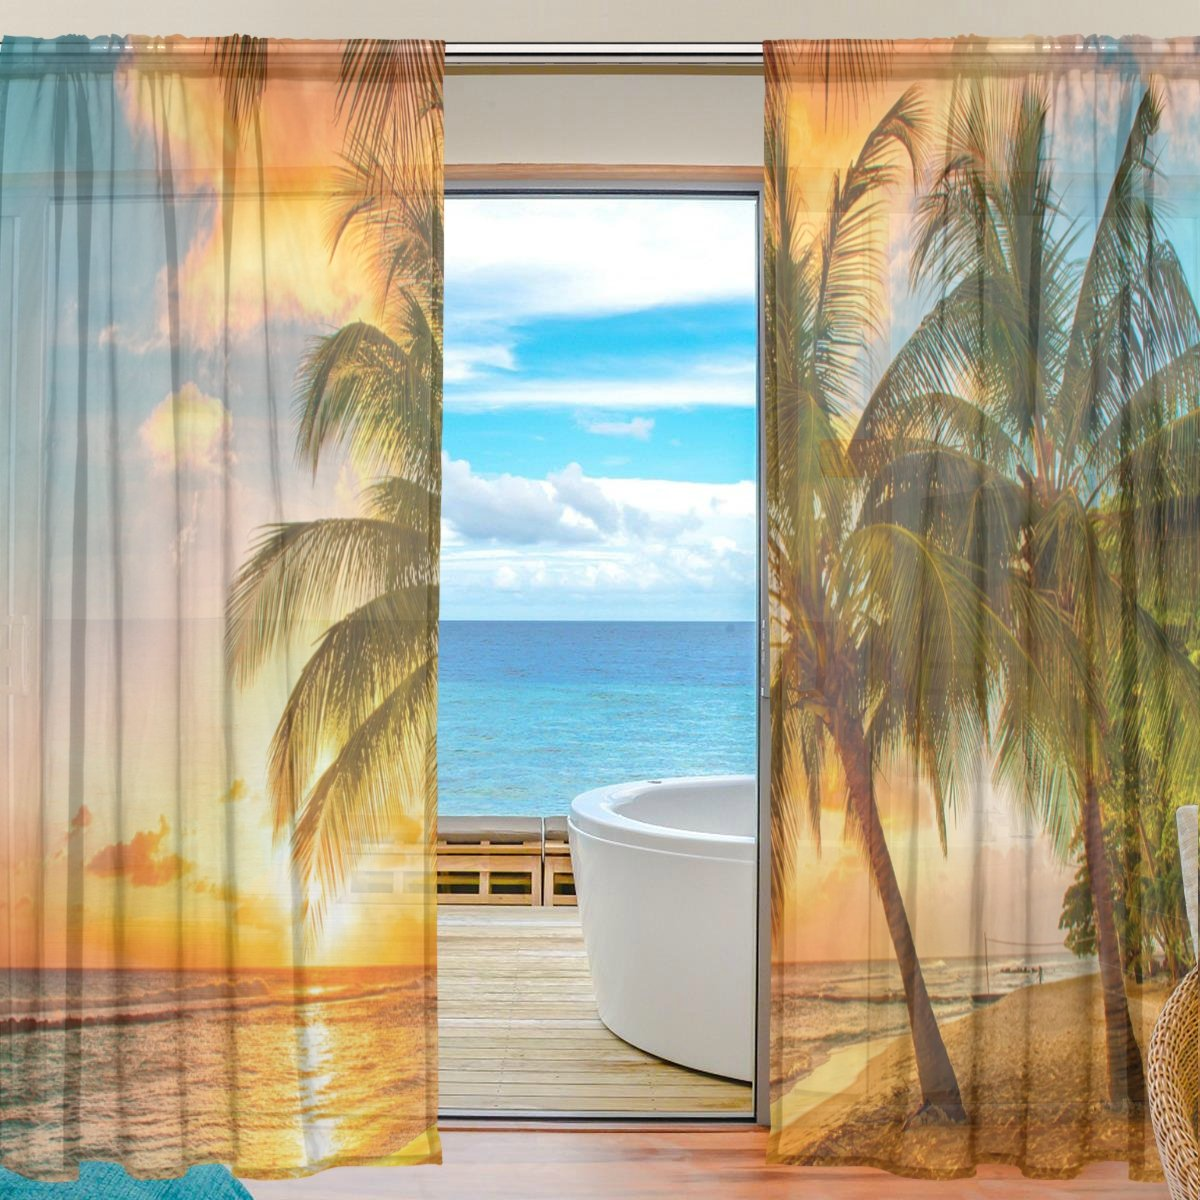 SEULIFE Window Sheer Curtain, Hawaiian Tropical Beach Palm Tree Sunset Voile Curtain Drapes for Door Kitchen Living Room Bedroom 55x78 inches 2 Panels by SEULIFE